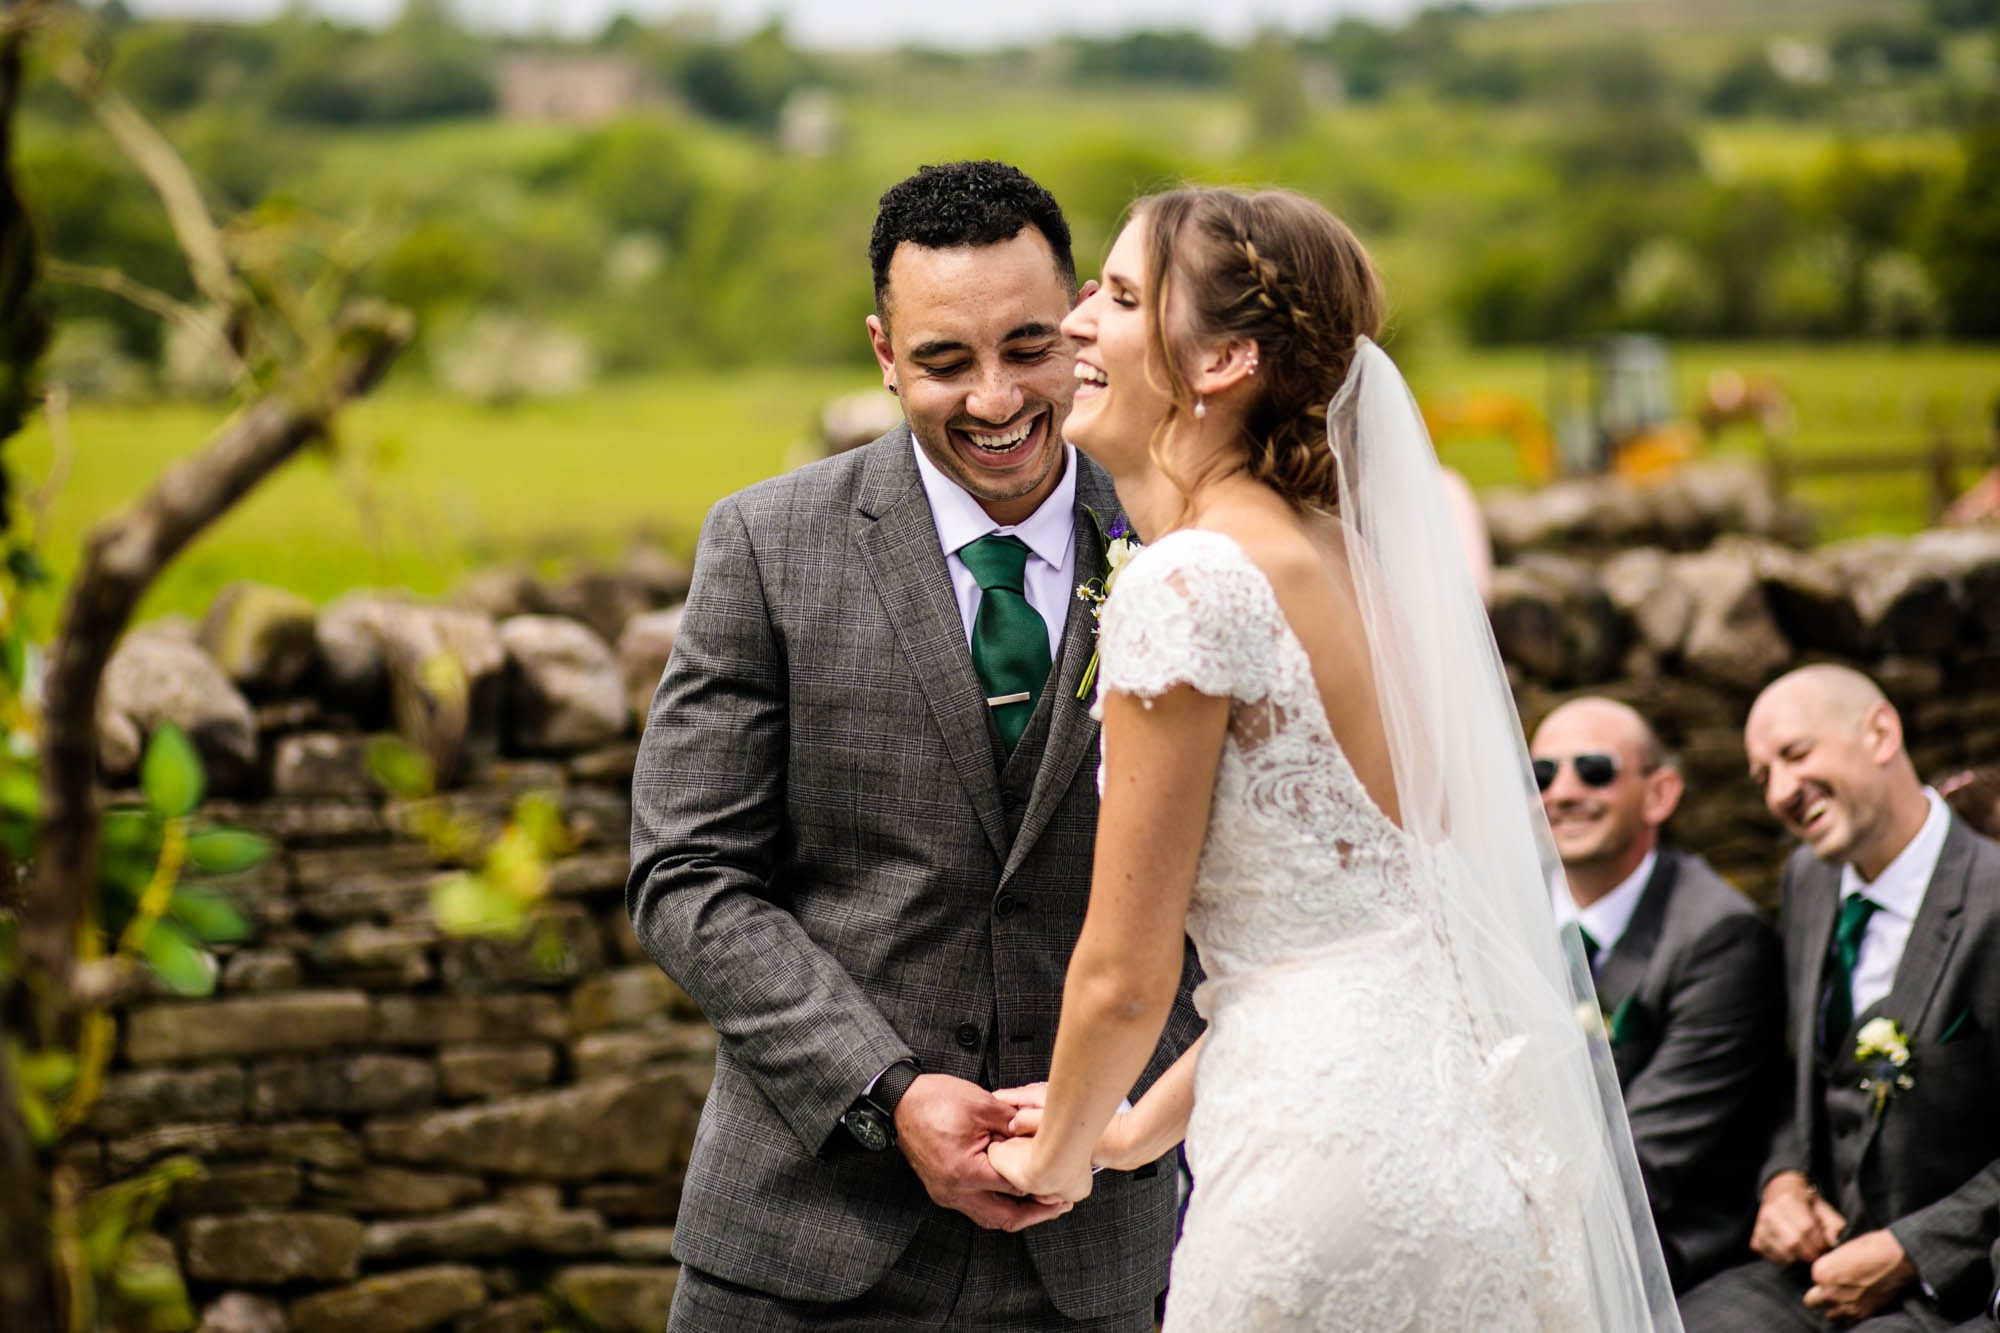 Thornsett Fields Farm Wedding Ceremony Photos